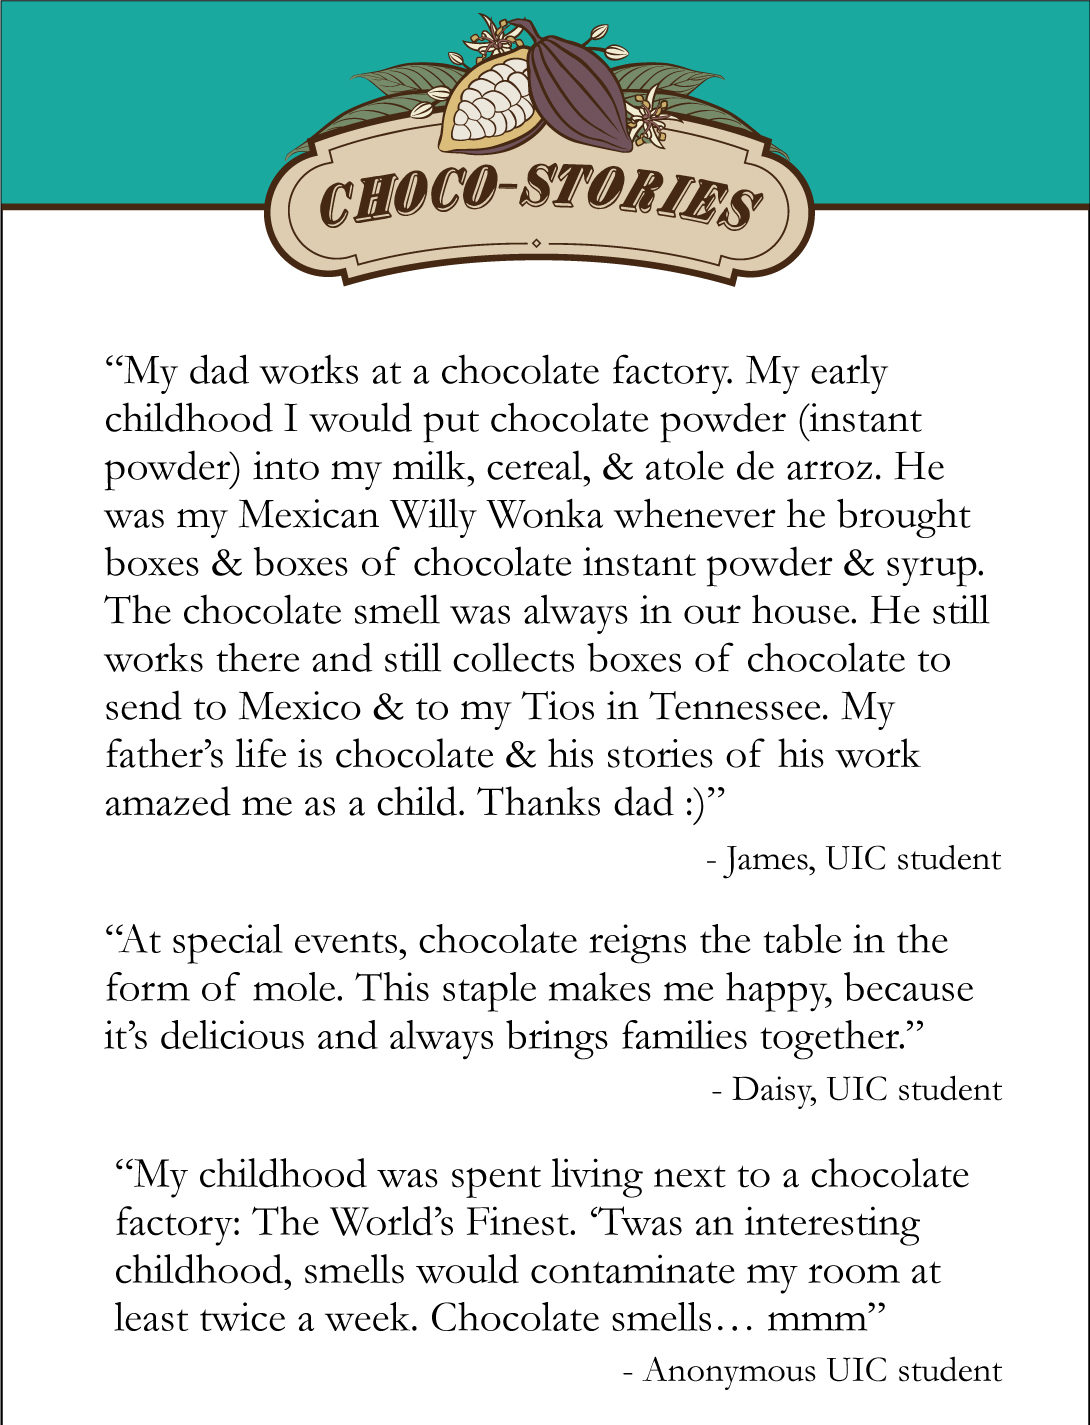 Choco-Stories in Chicago